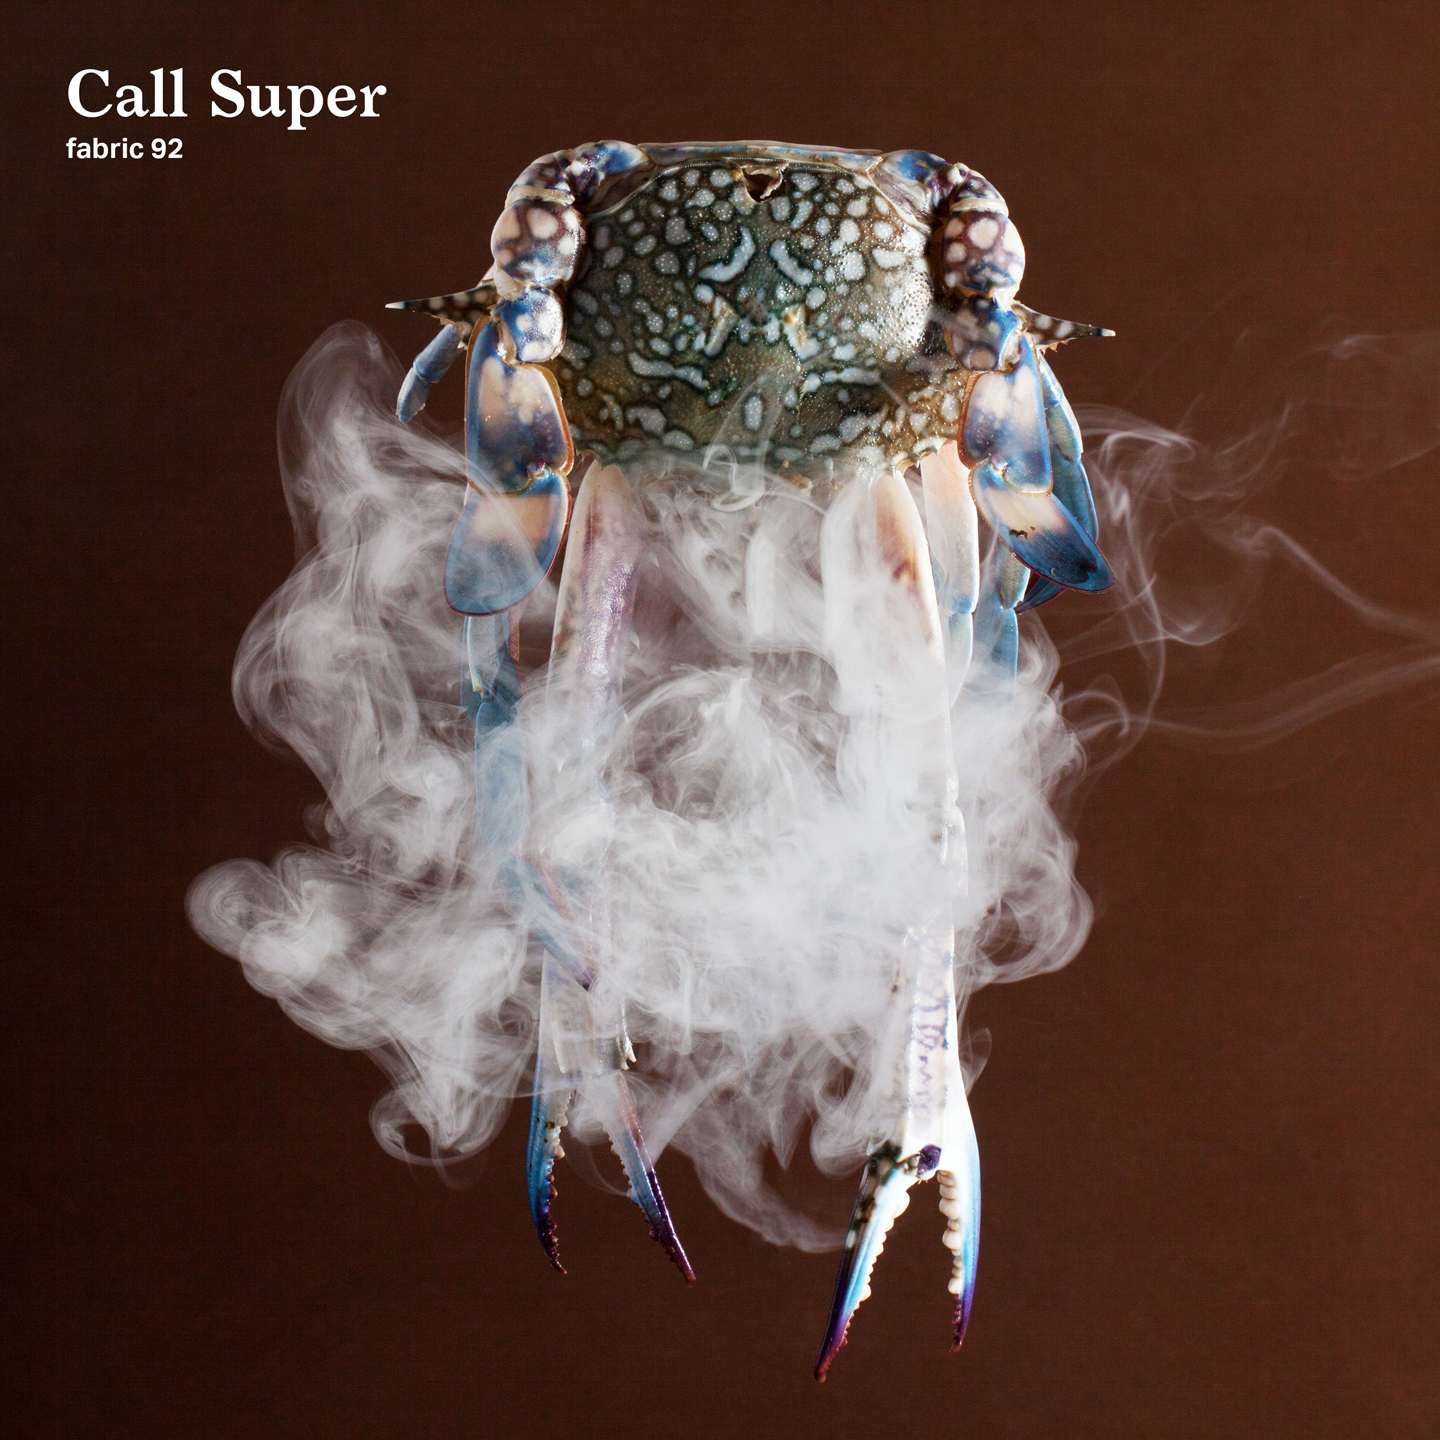 Call Super - fabric 92